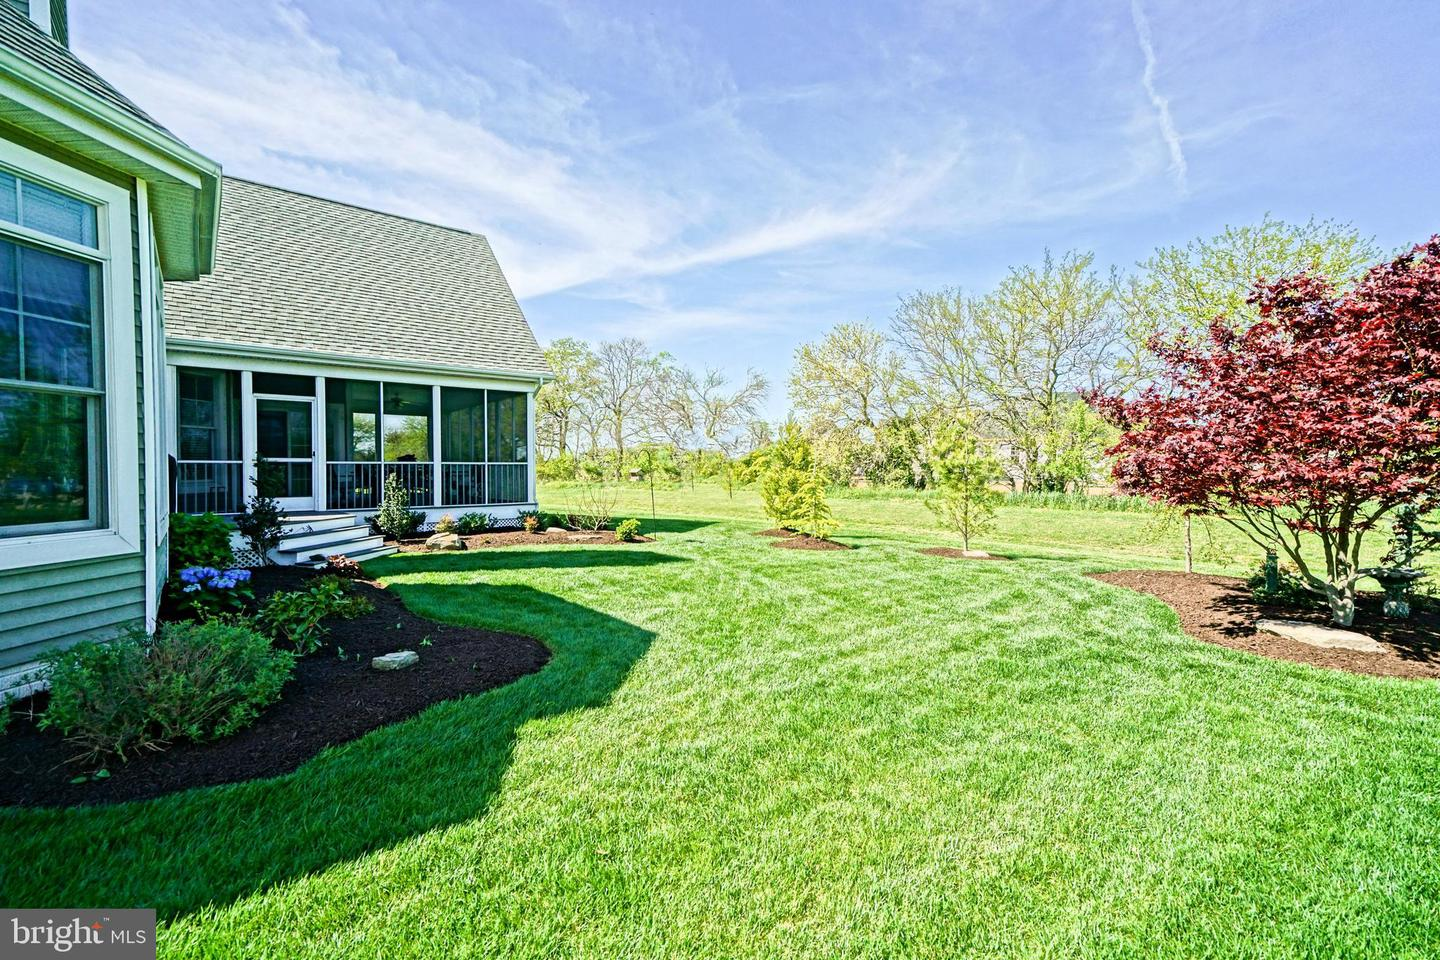 DESU139128-301667385012-2019-08-05-10-43-56 35222 Overfalls Dr N | Lewes, DE Real Estate For Sale | MLS# Desu139128  - Lee Ann Group